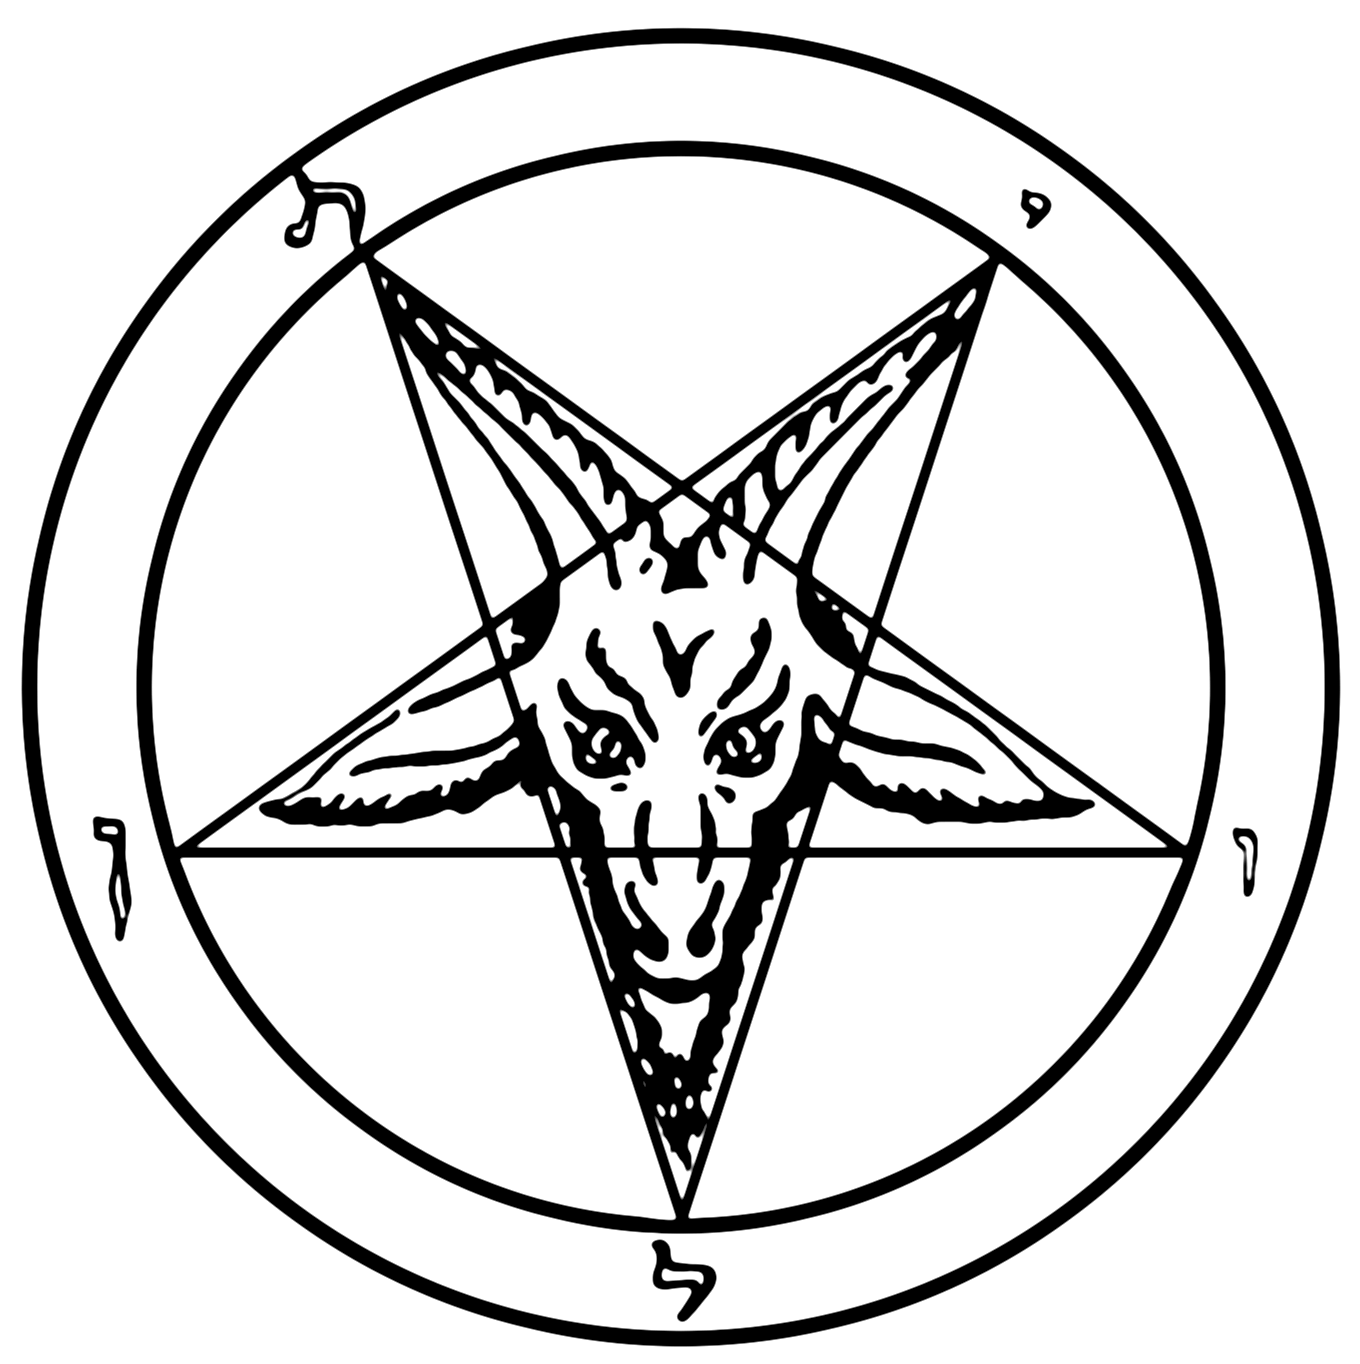 vector library Baphomet drawing easy. Investigative journalists reveal findings